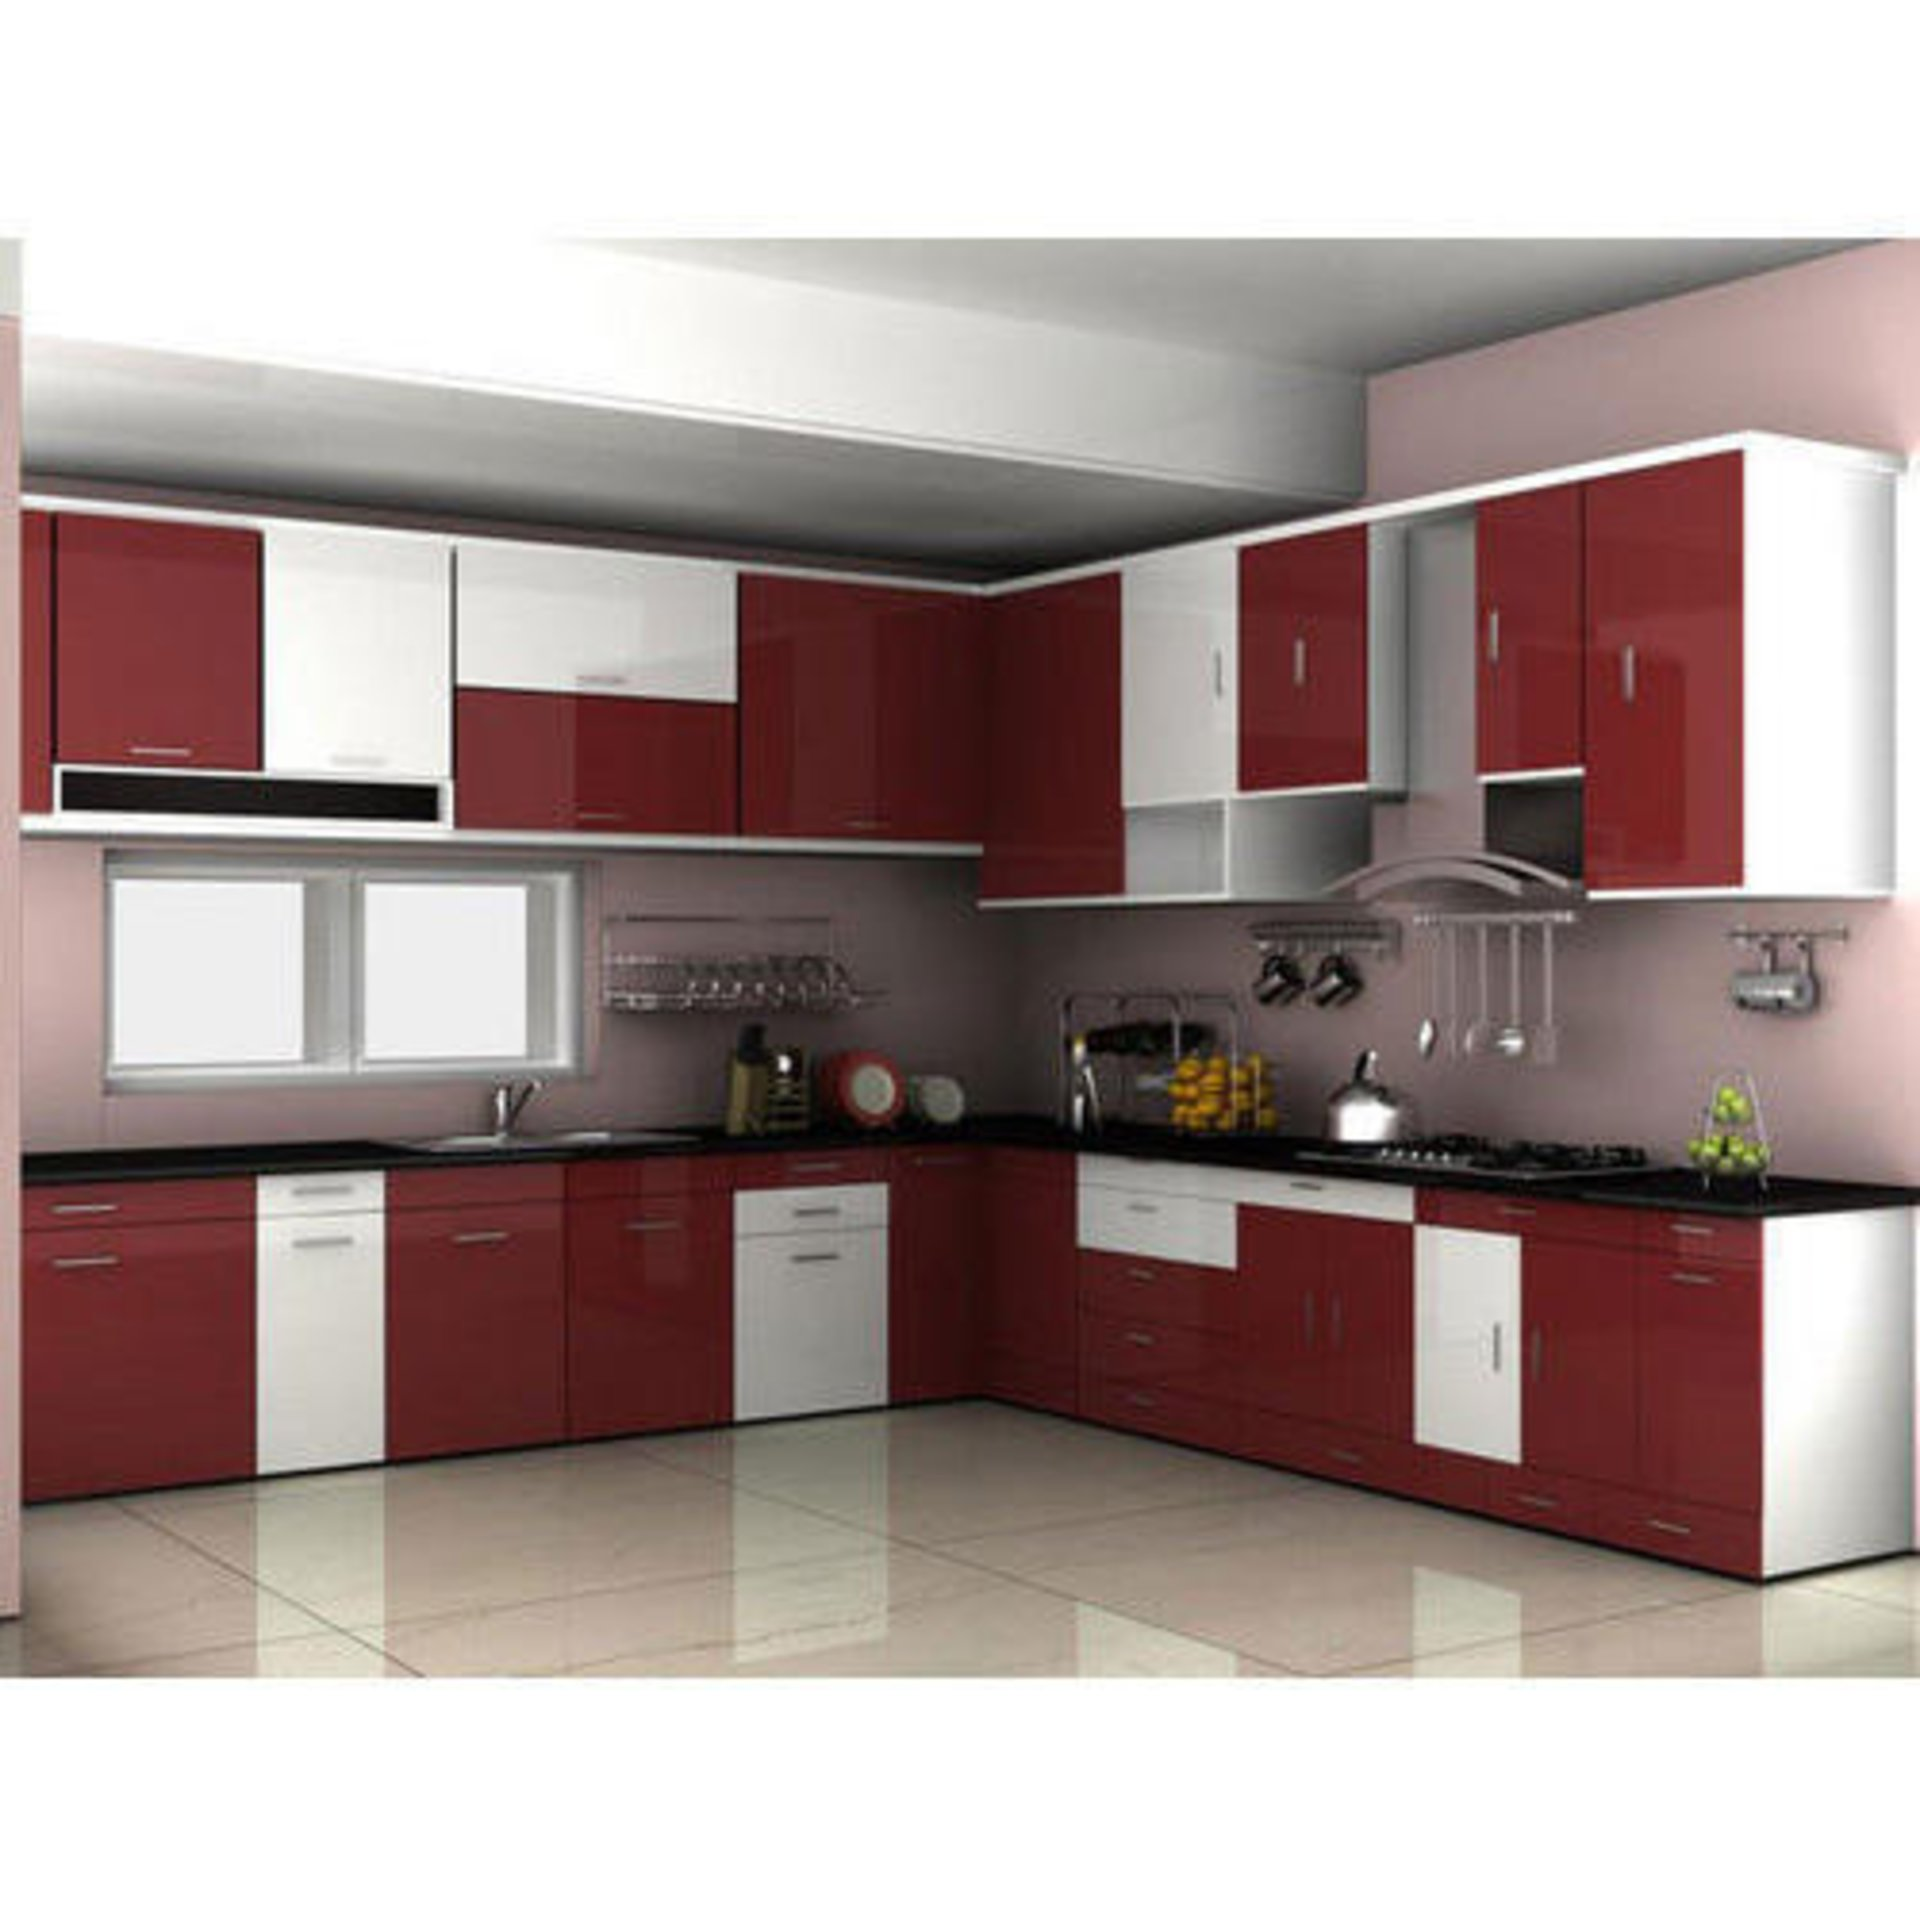 Perfect Modular Kitchen Designers Company In Pune Ag Designs Rehanrahi